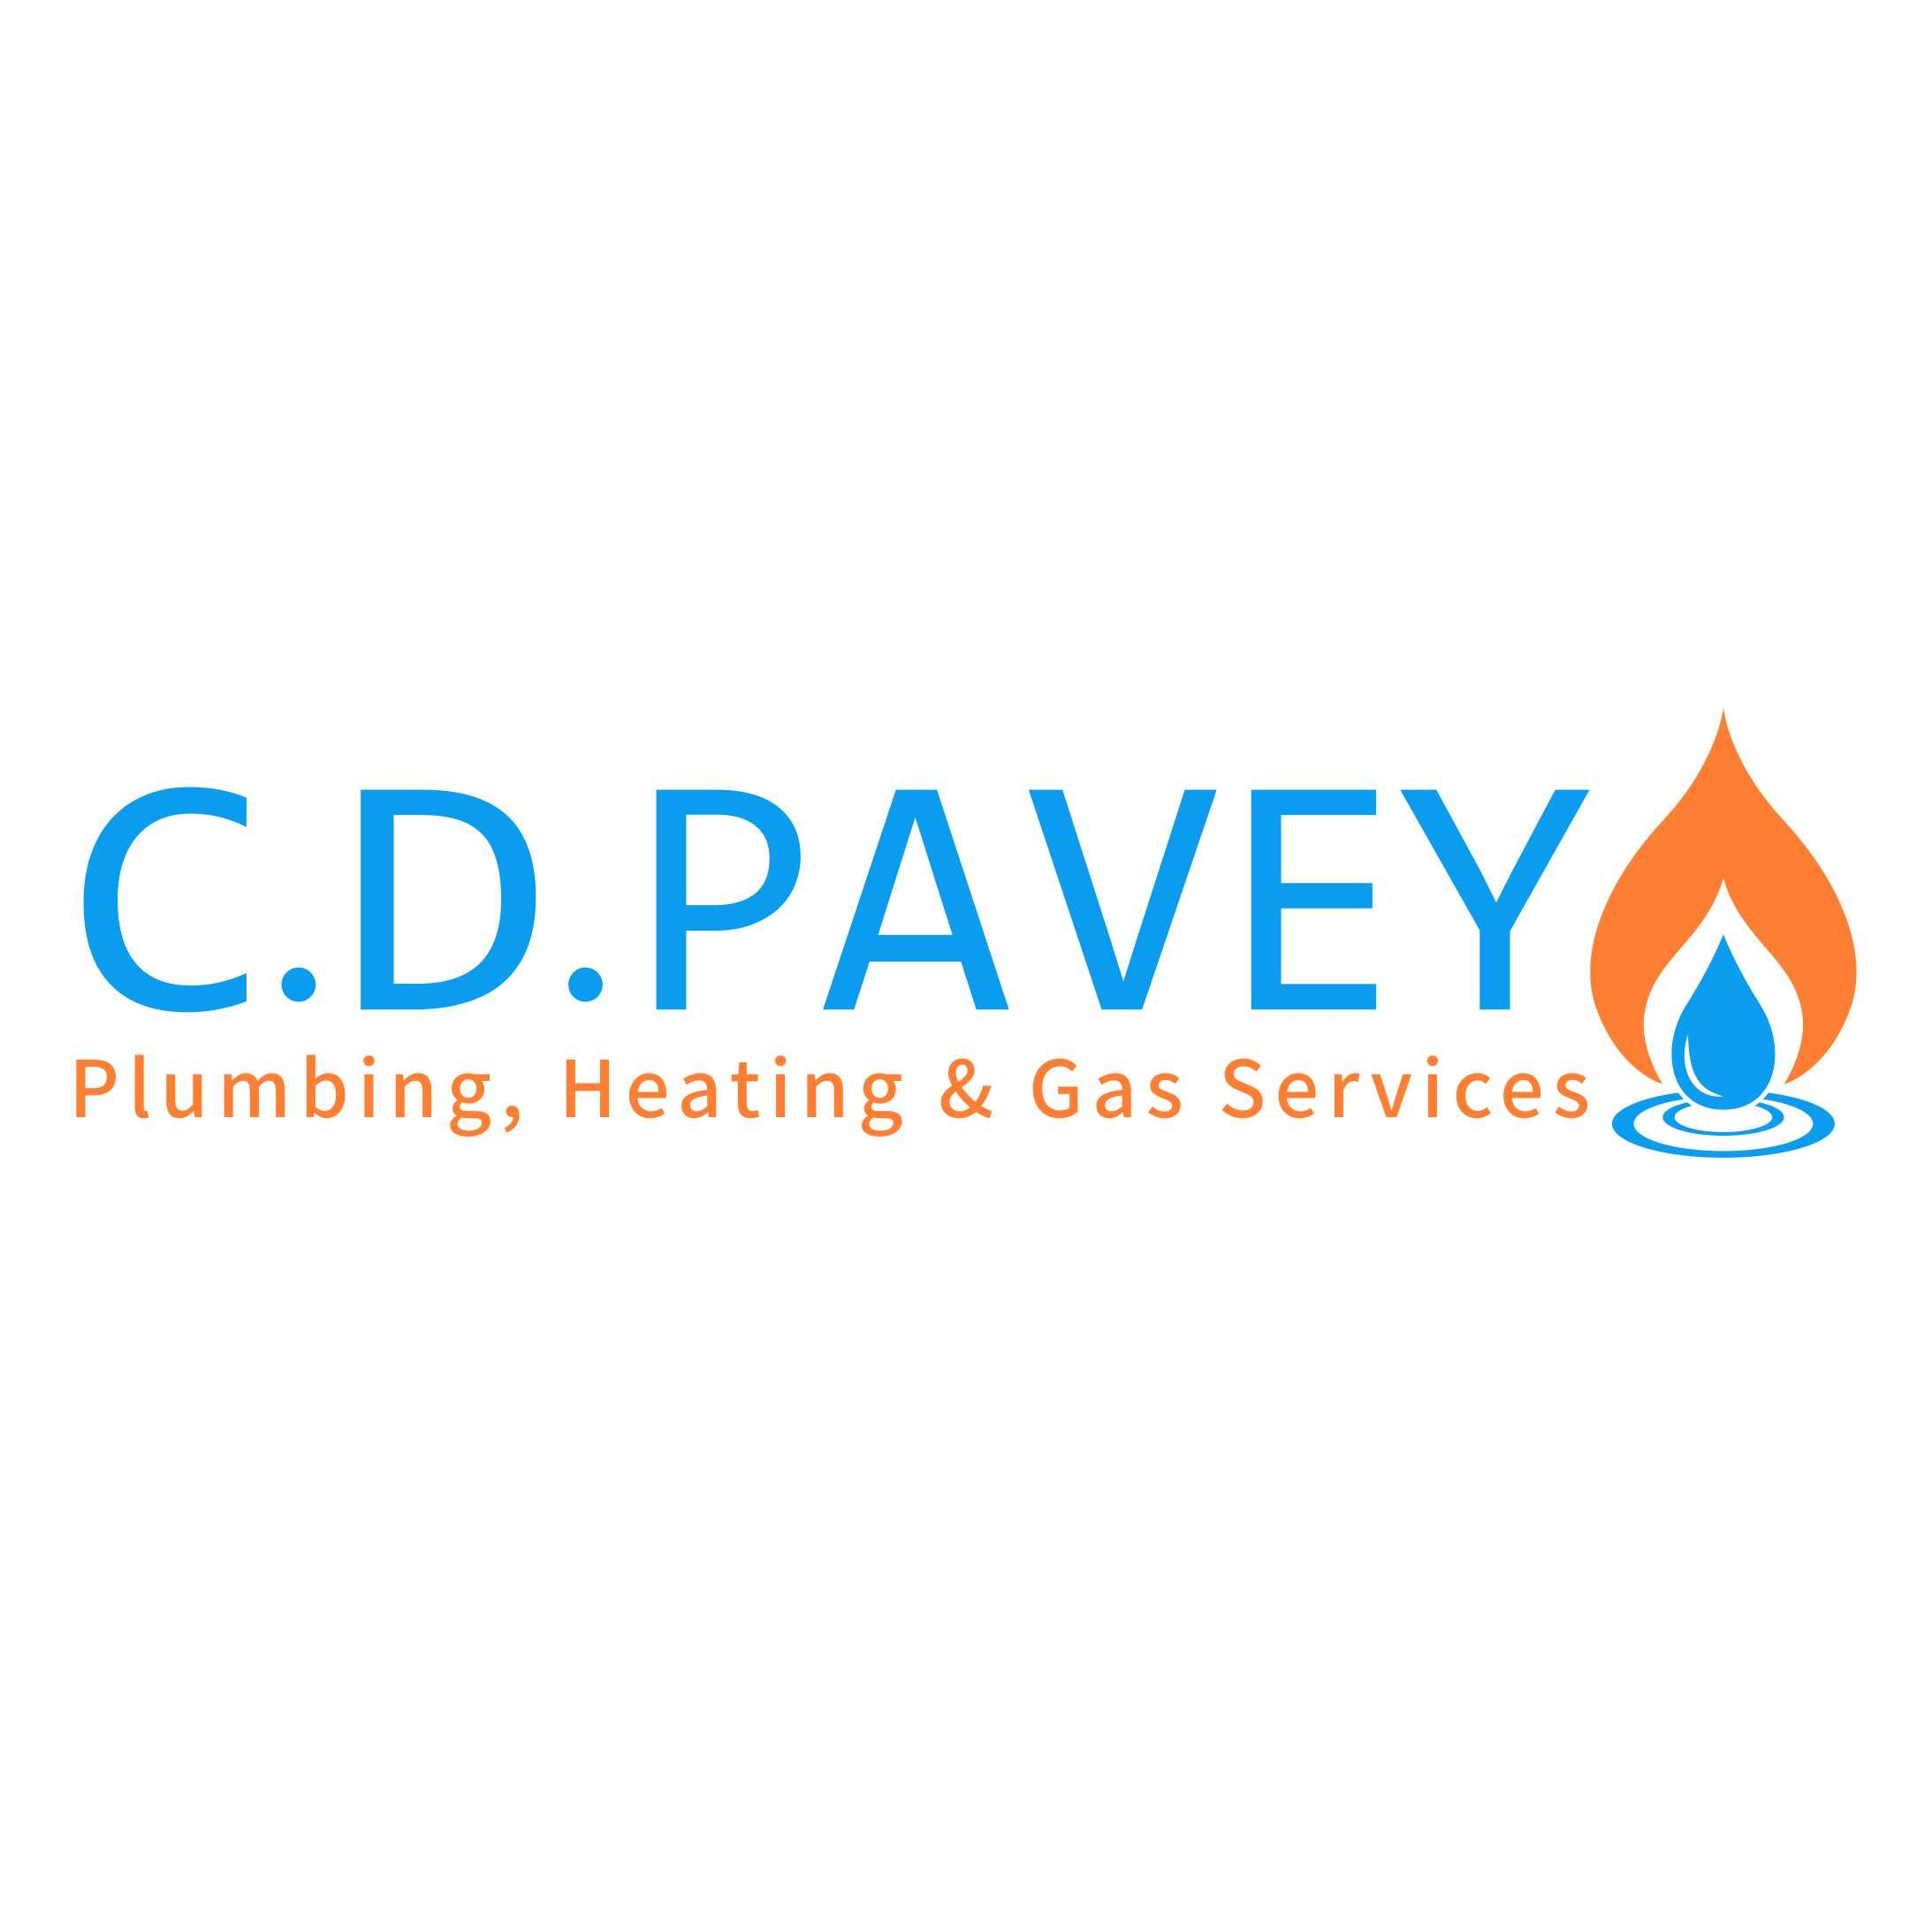 Carl Pavey- CD Pavey Plumbing, Heating and Gas Services